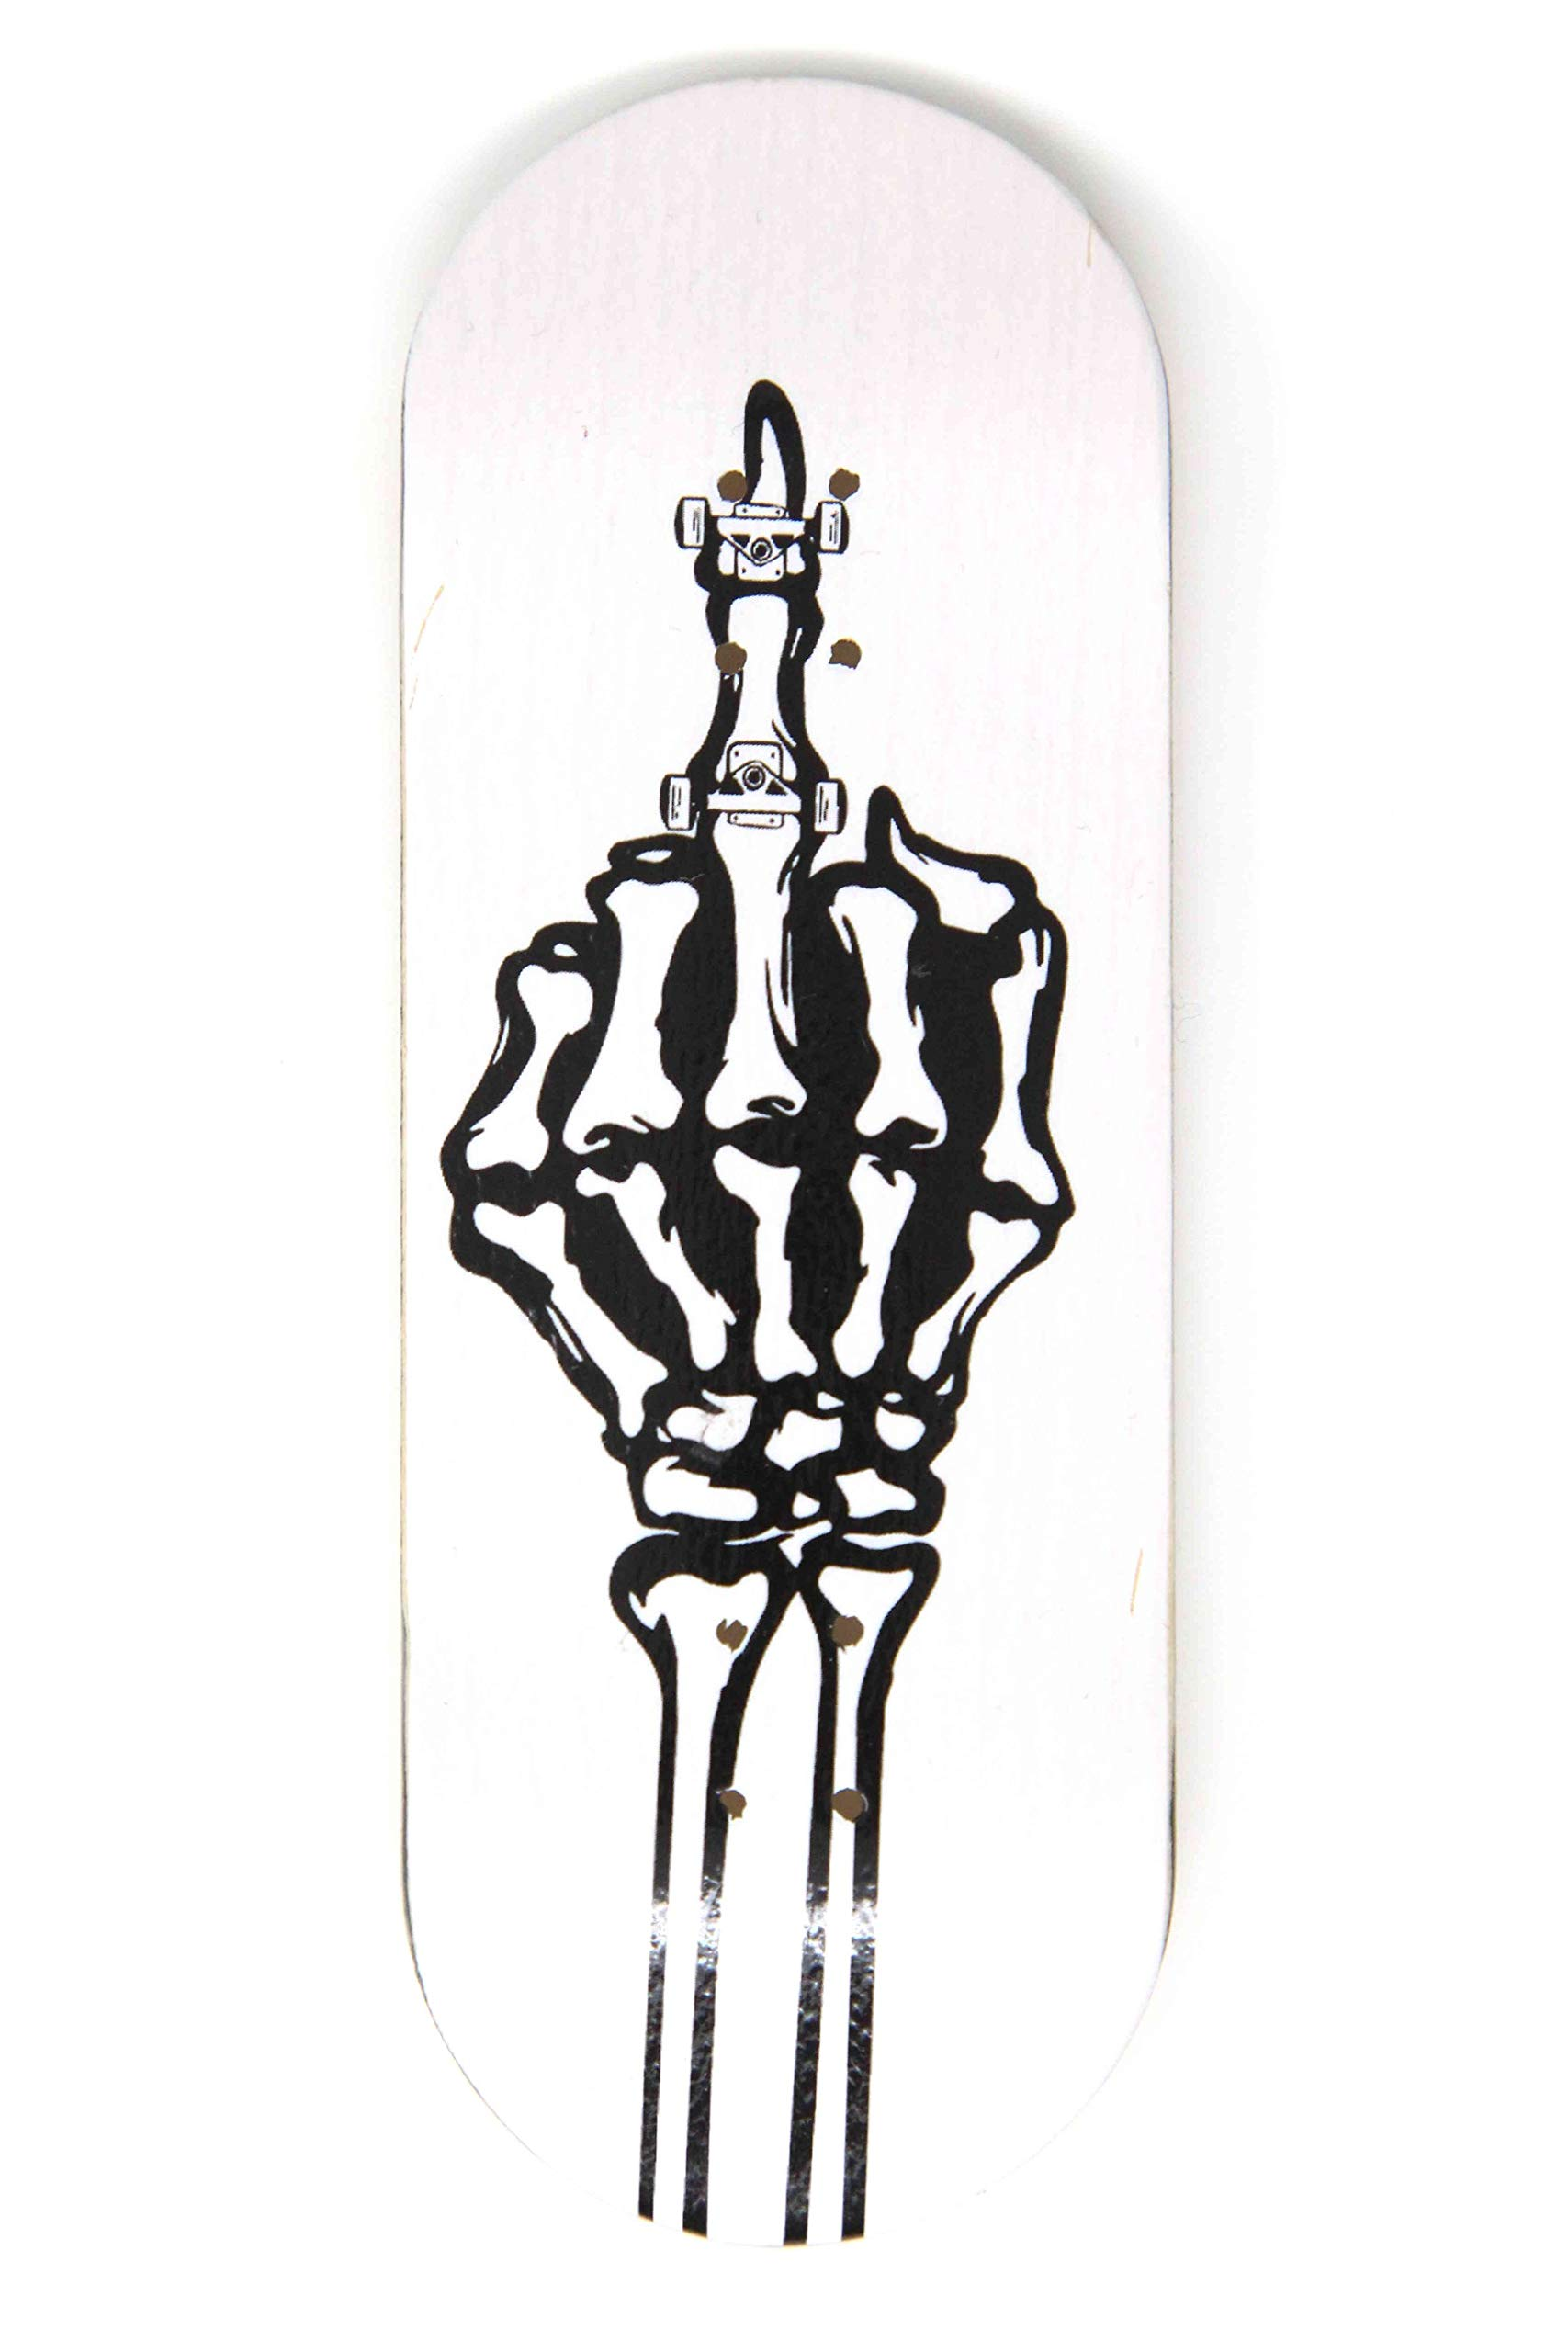 Skull Fingerboards FK You 34mm Complete Professional Wooden Fingerboard Mini Skateboard 5 PLY with CNC Bearing Wheels by Skull Fingerboards (Image #2)